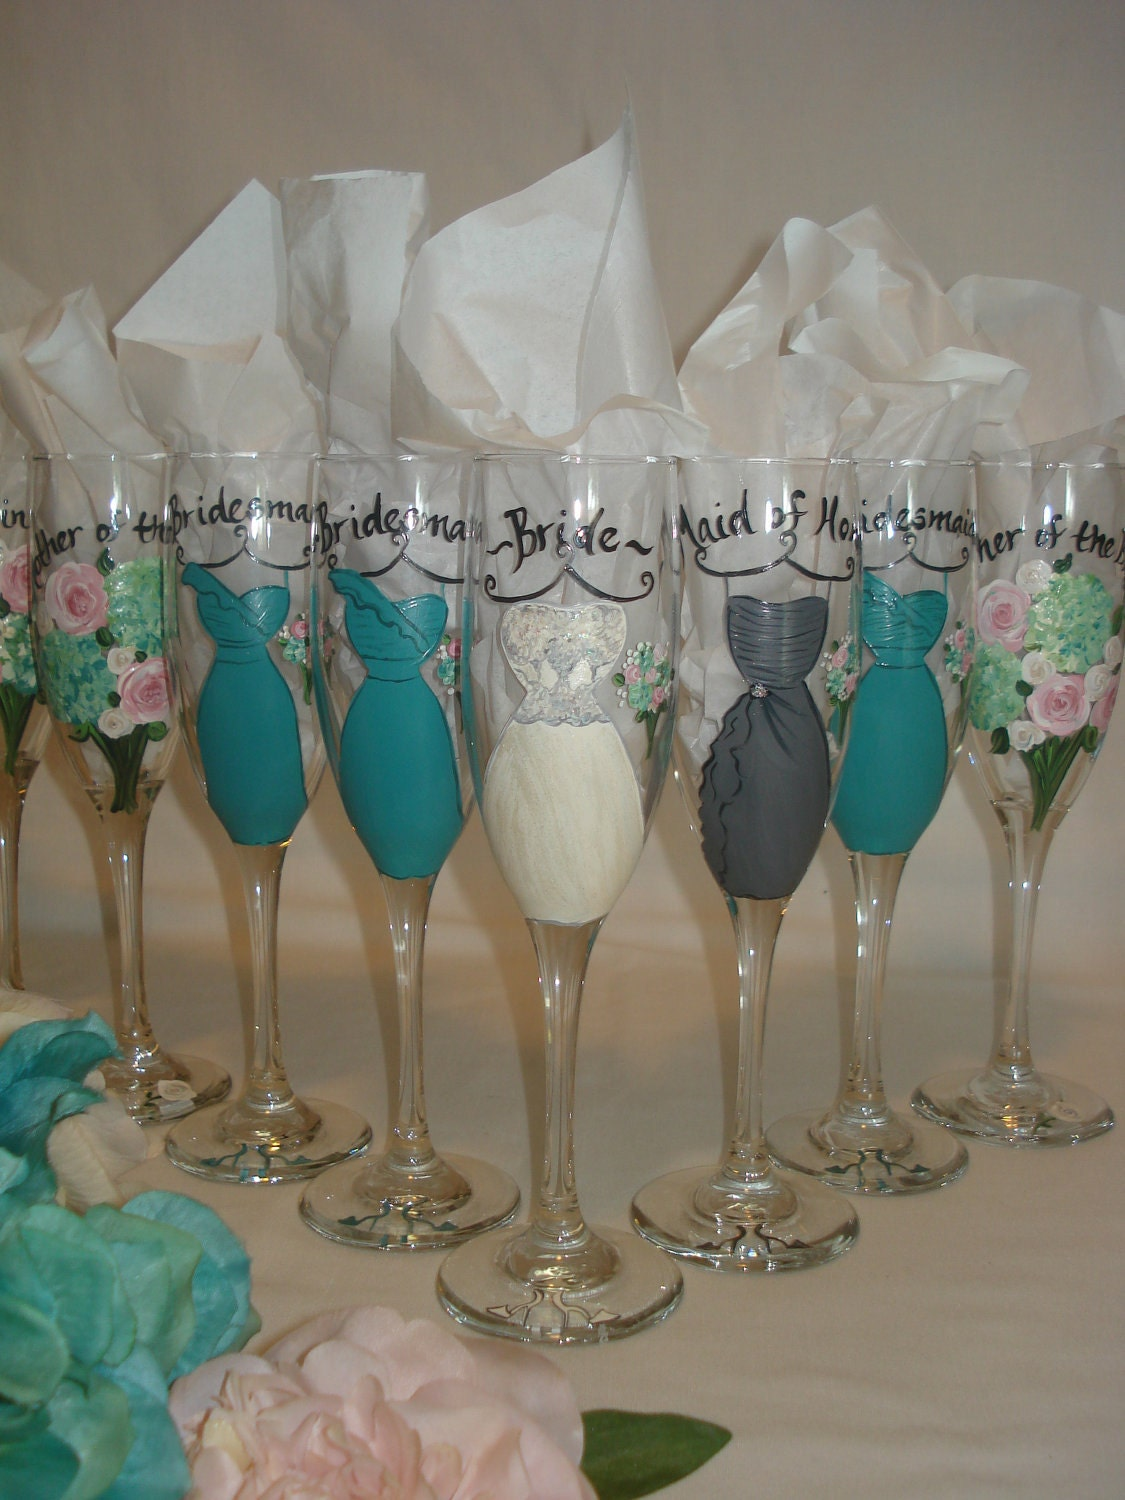 Wedding Day Gifts For Bridesmaids : Hand Painted Personalized Bridal Party Champagne Glasses